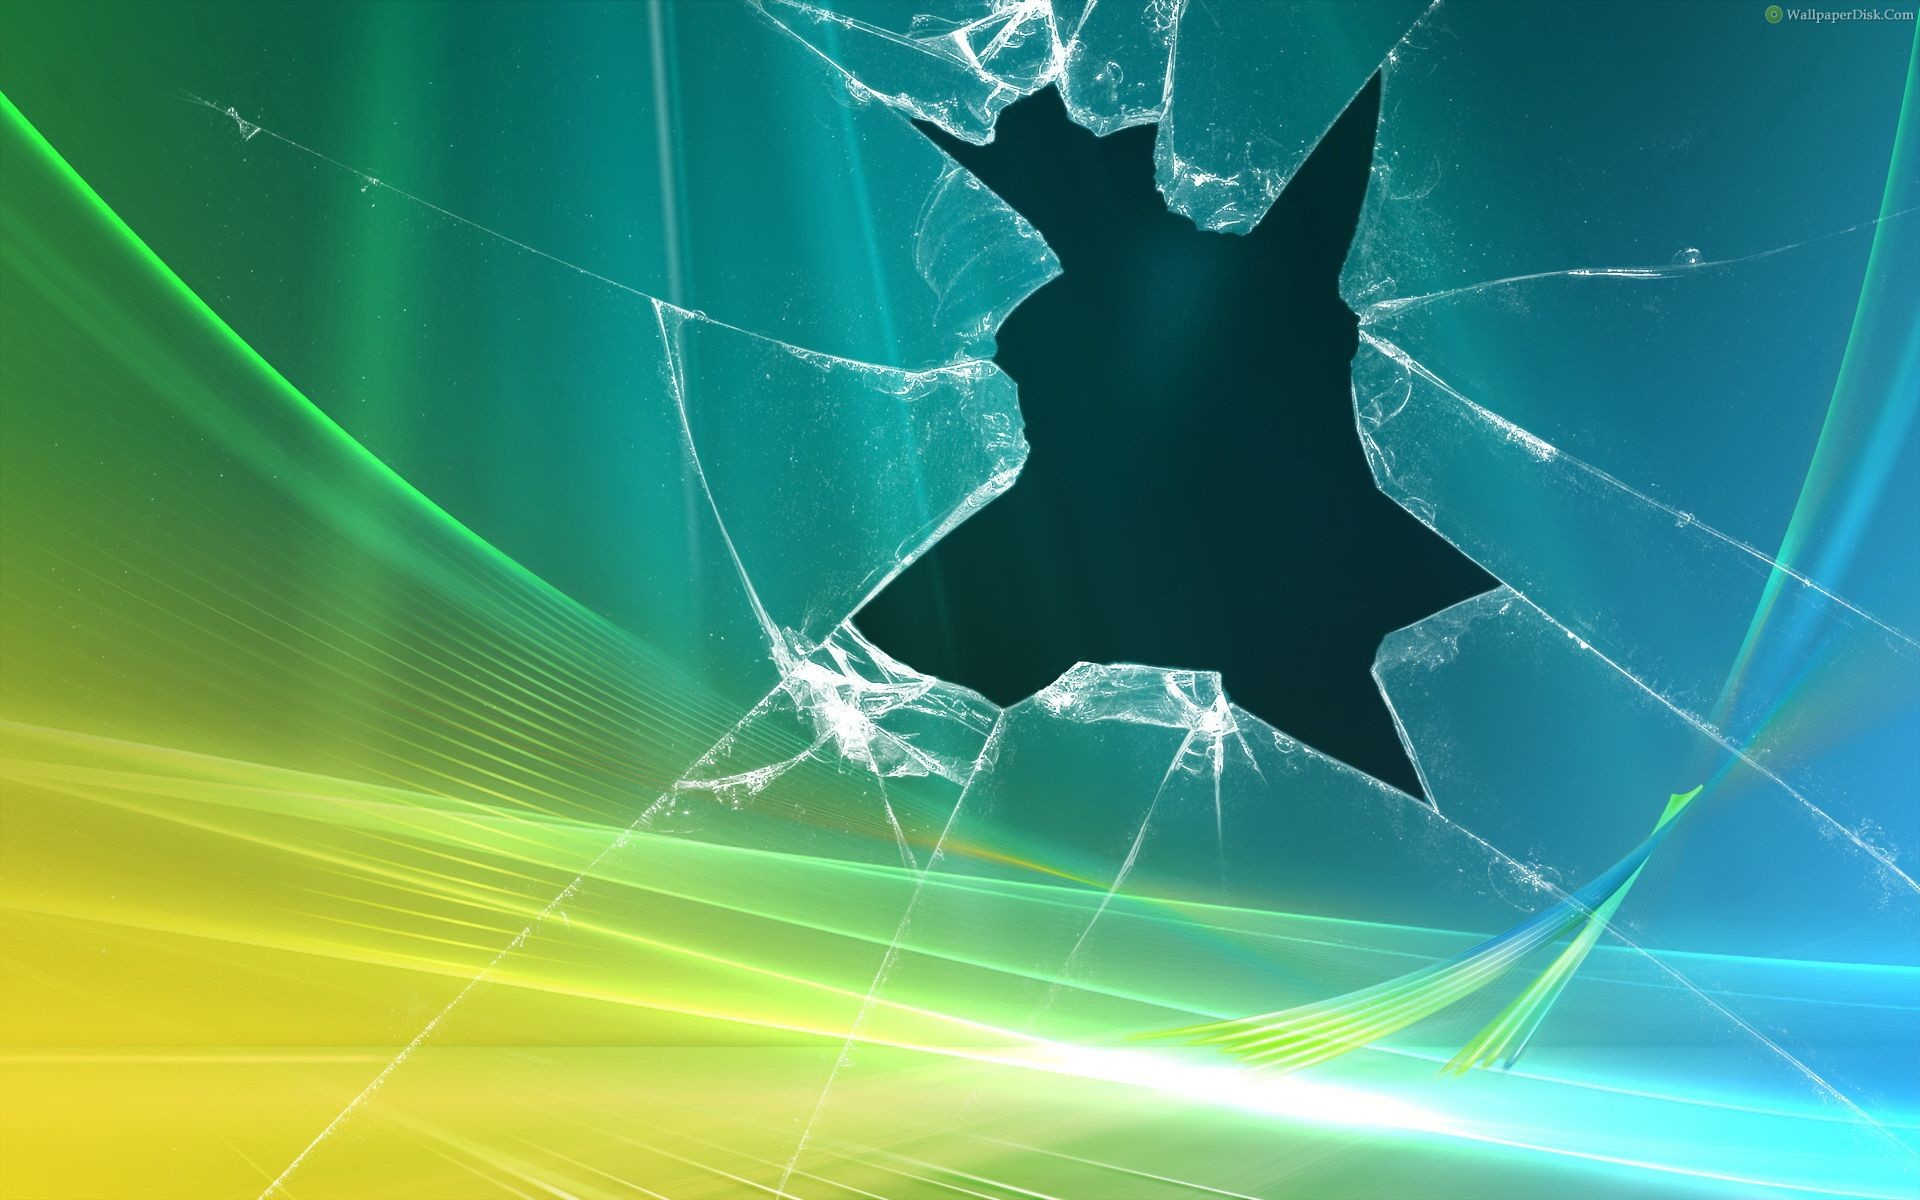 Cracked computer screen wallpaper 57 images 1920x1200 wallpaper broken screen wallpapersafari cracked computer screen wallpapers wallpaper cave voltagebd Images